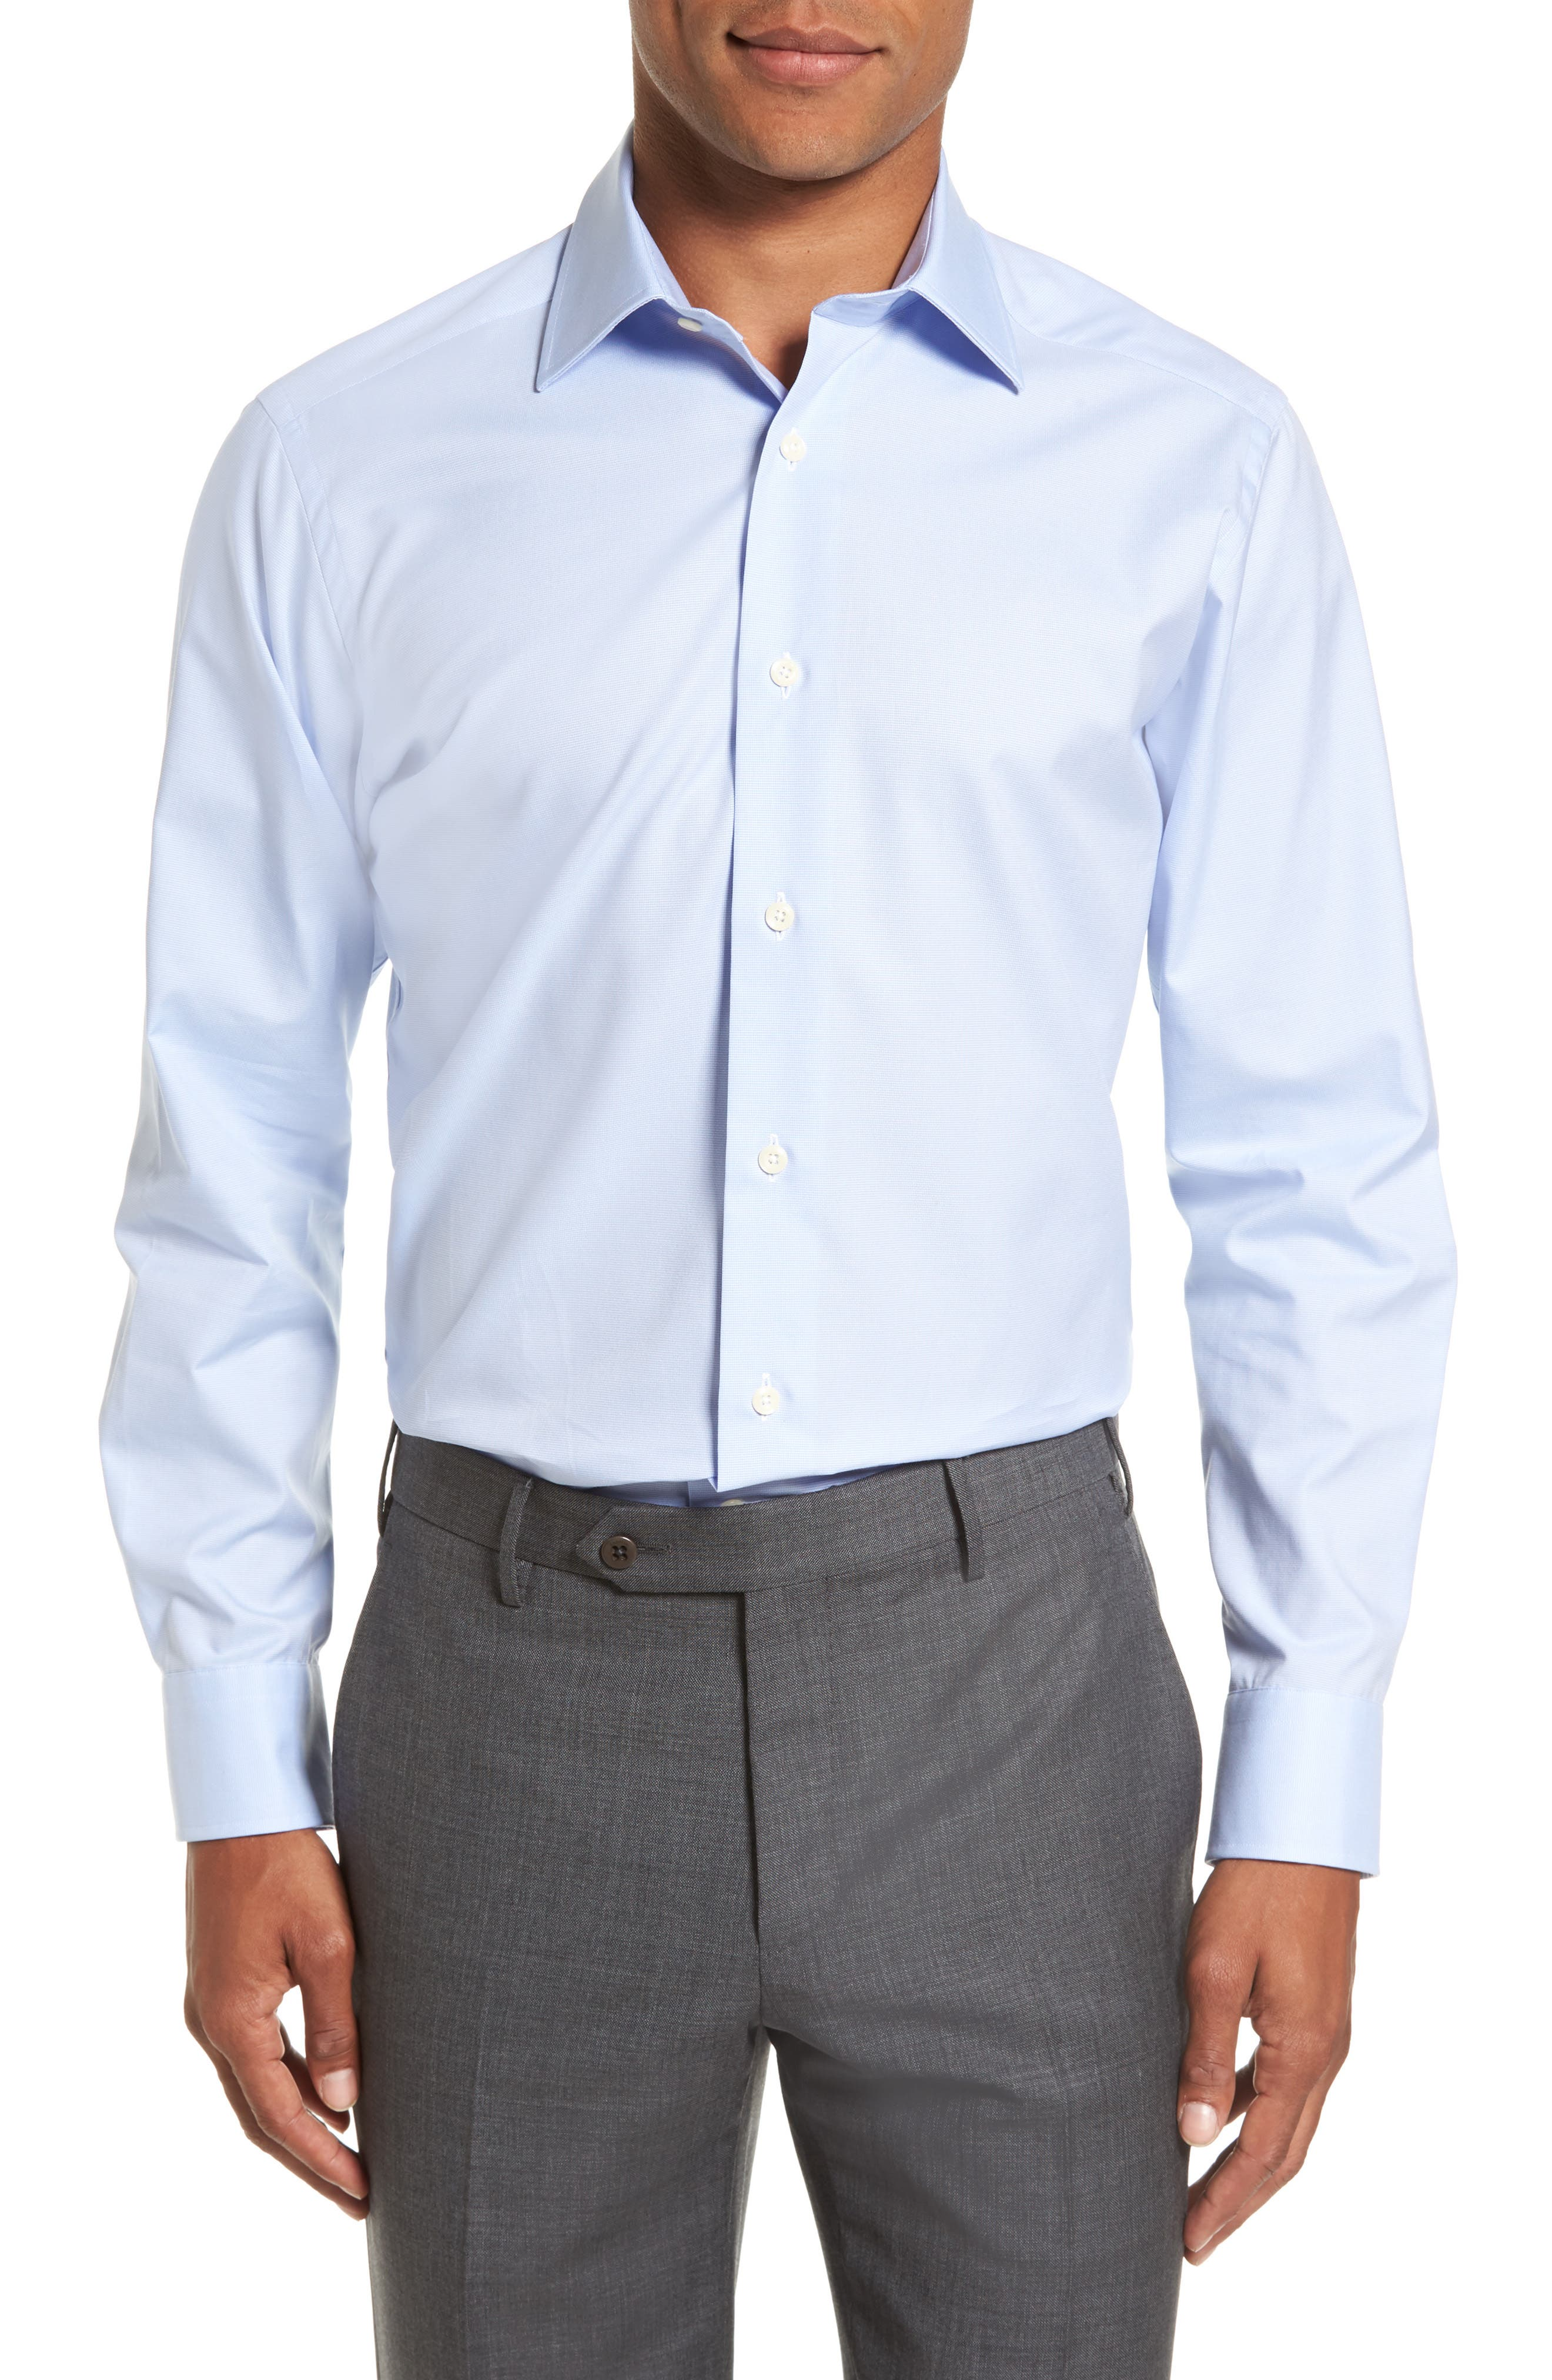 Alternate Image 2  - David Donahue Slim Fit Solid Dress Shirt